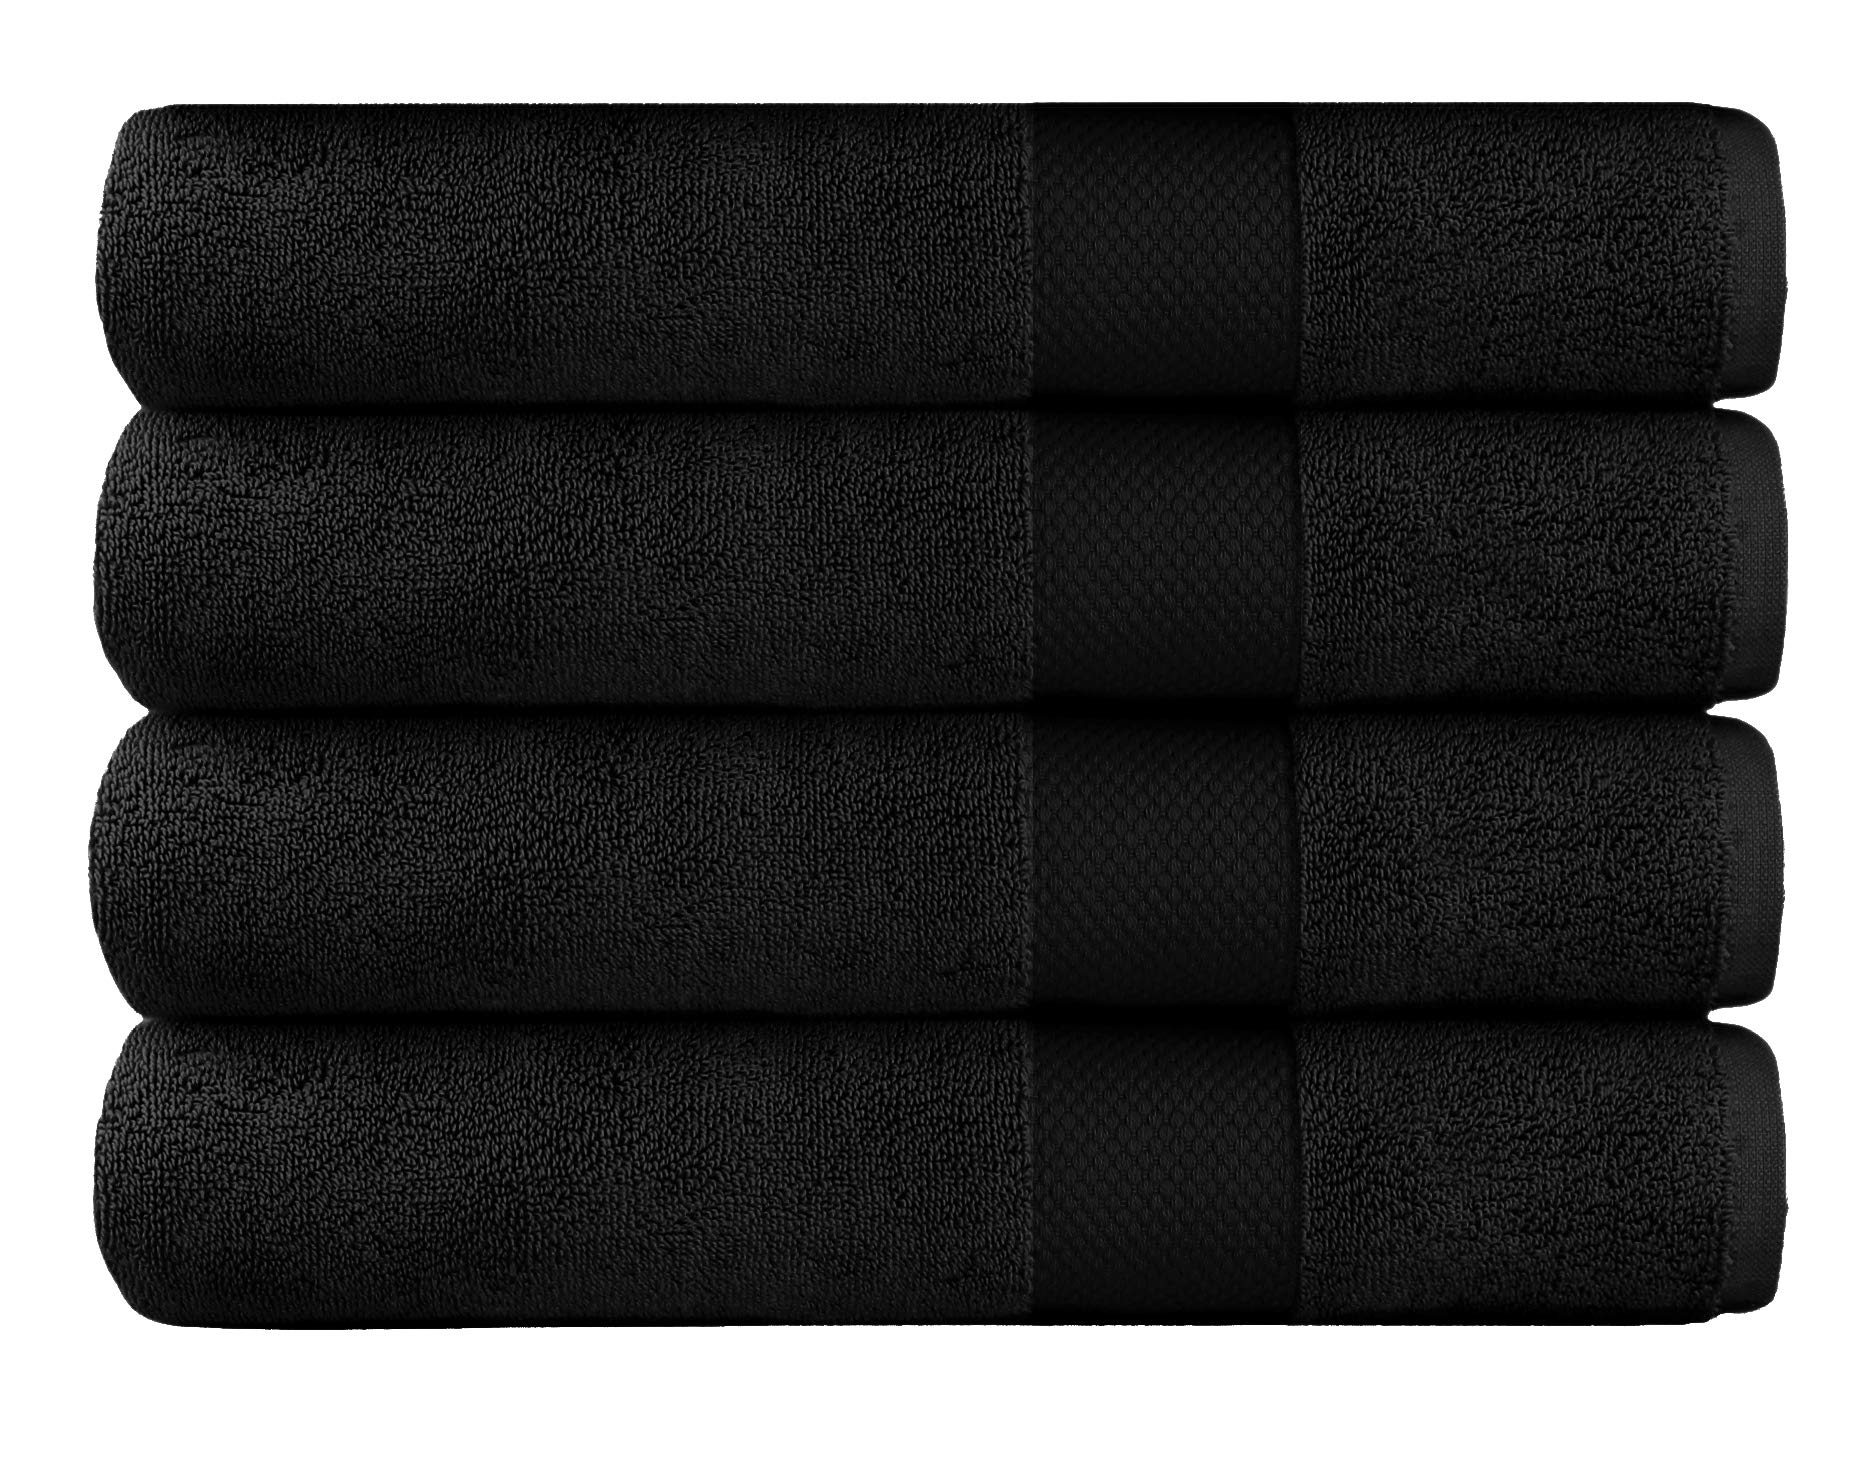 Cotton Craft - 4 Pack Luxuriously Oversized Hotel Bath Towel - Black - 100% Ringspun Cotton - 30x58 - Heavy Weight 700 Grams - 2 Ply Construction - Highly Absorbent - Easy Care Machine Wash